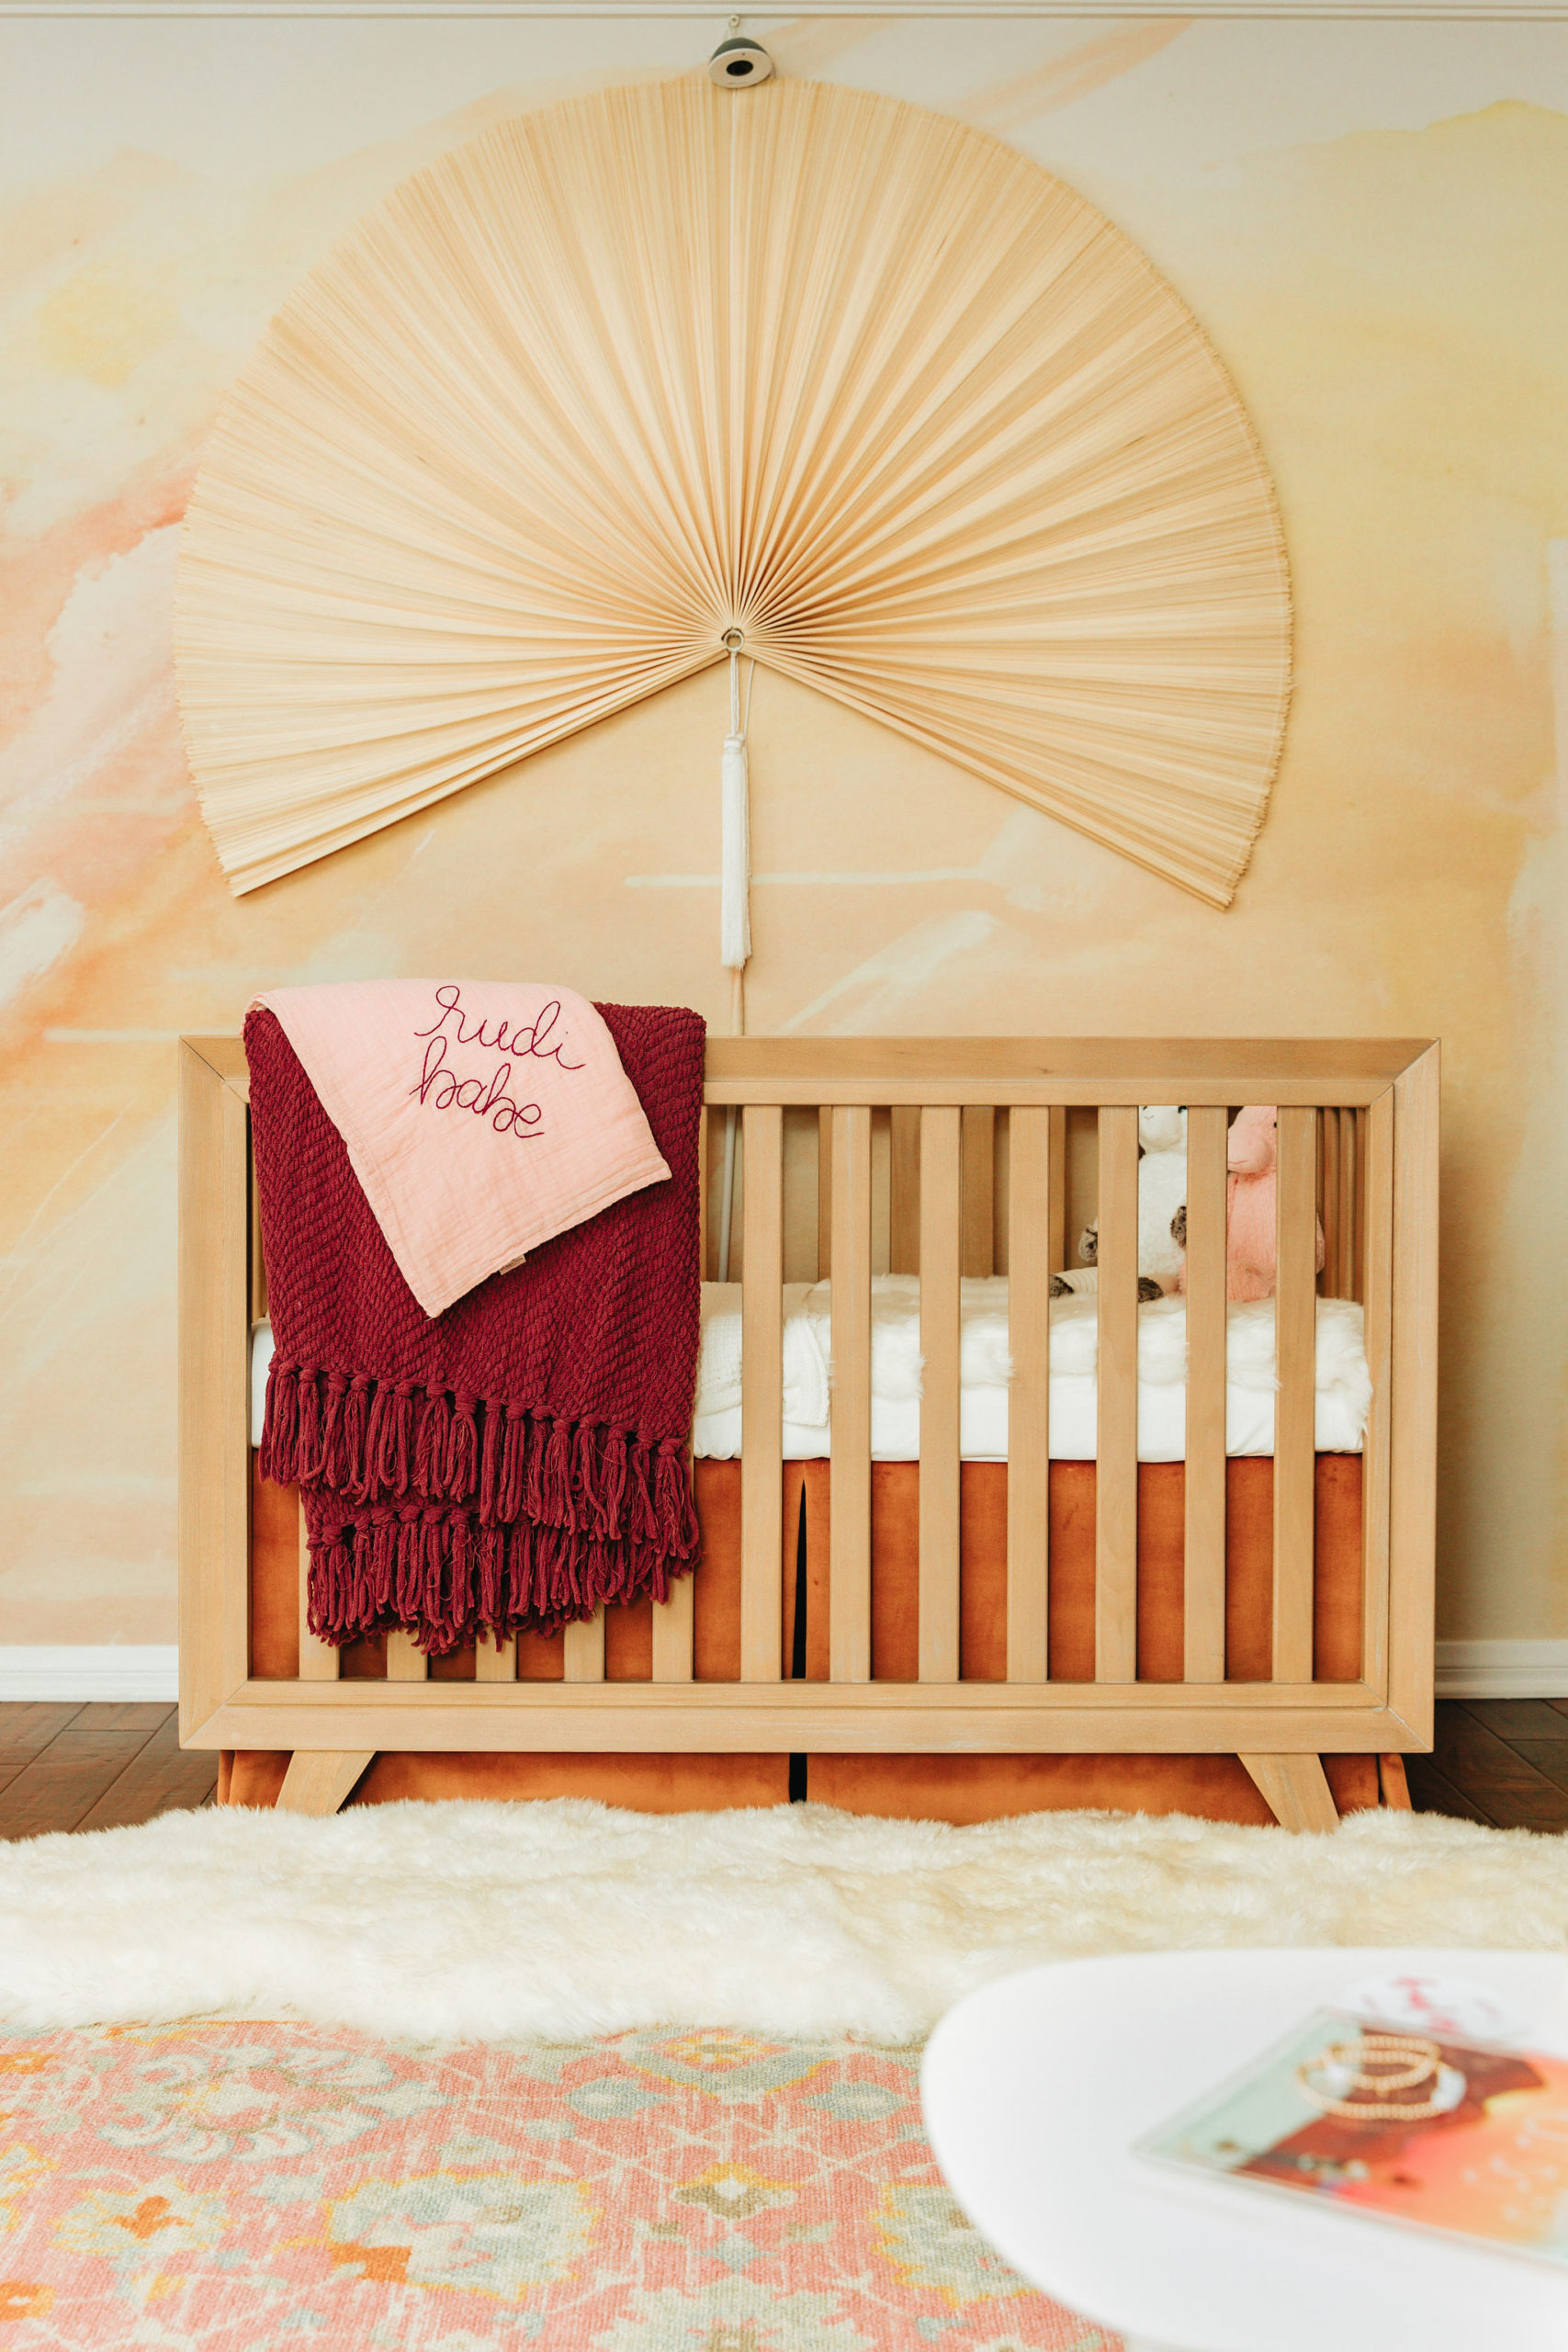 Fan Over Natural Wooster Crib with Abstract Sunrise Wallpaper